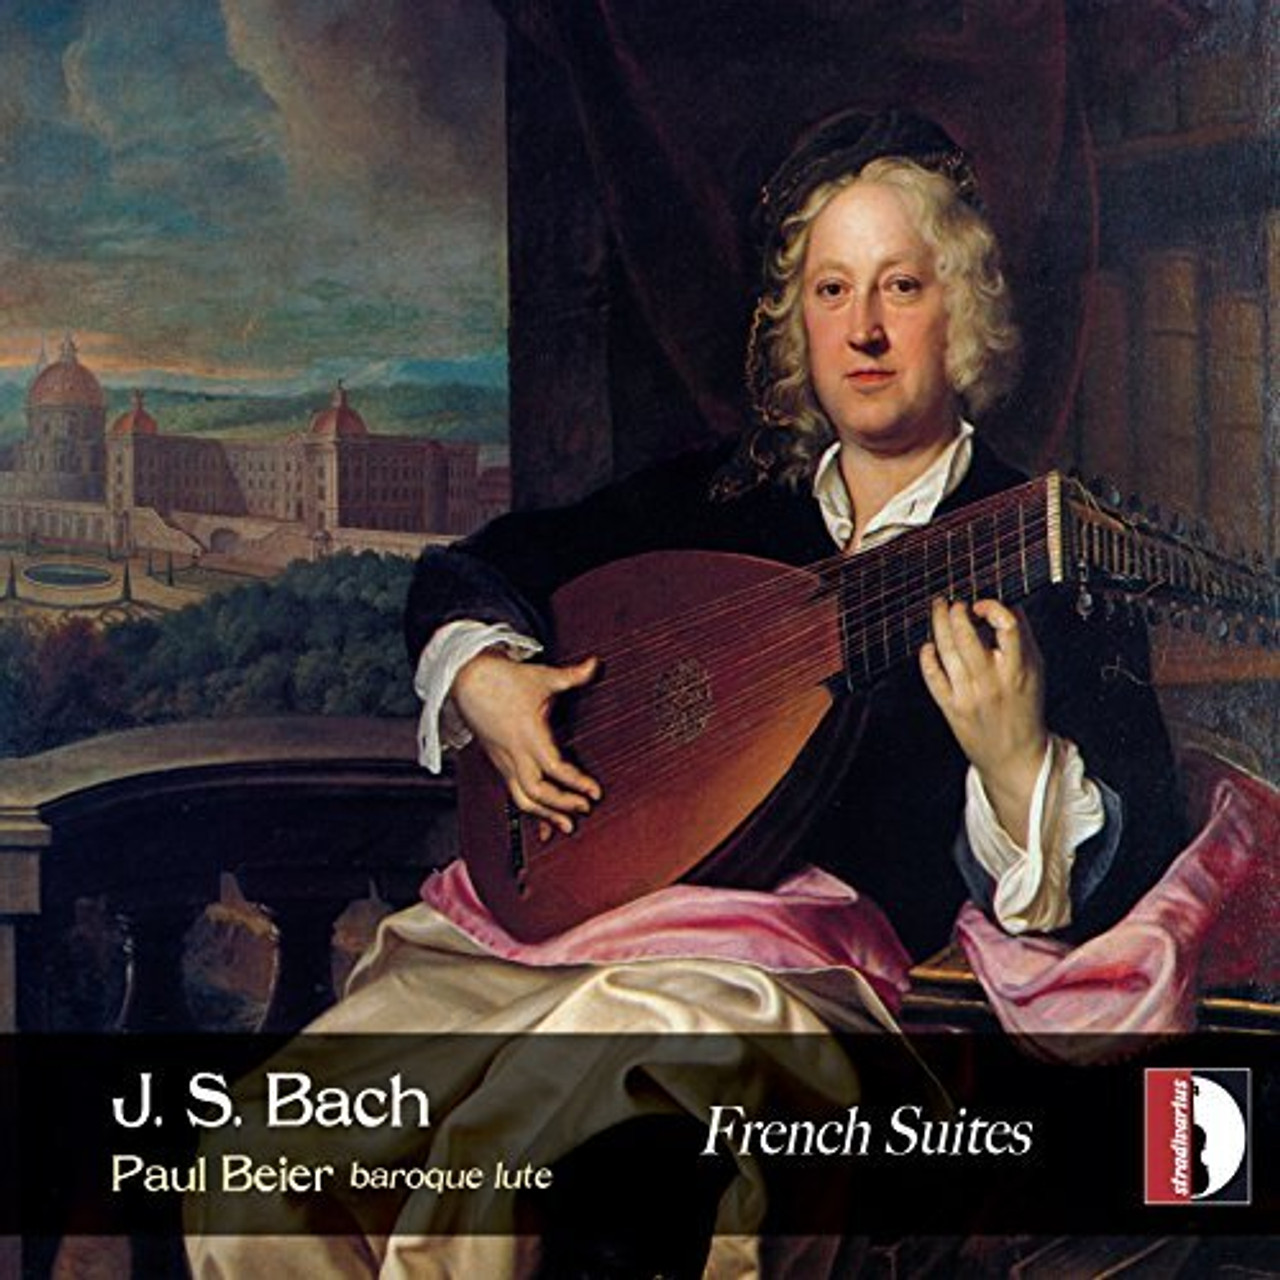 J. S. Bach French Lute Suites